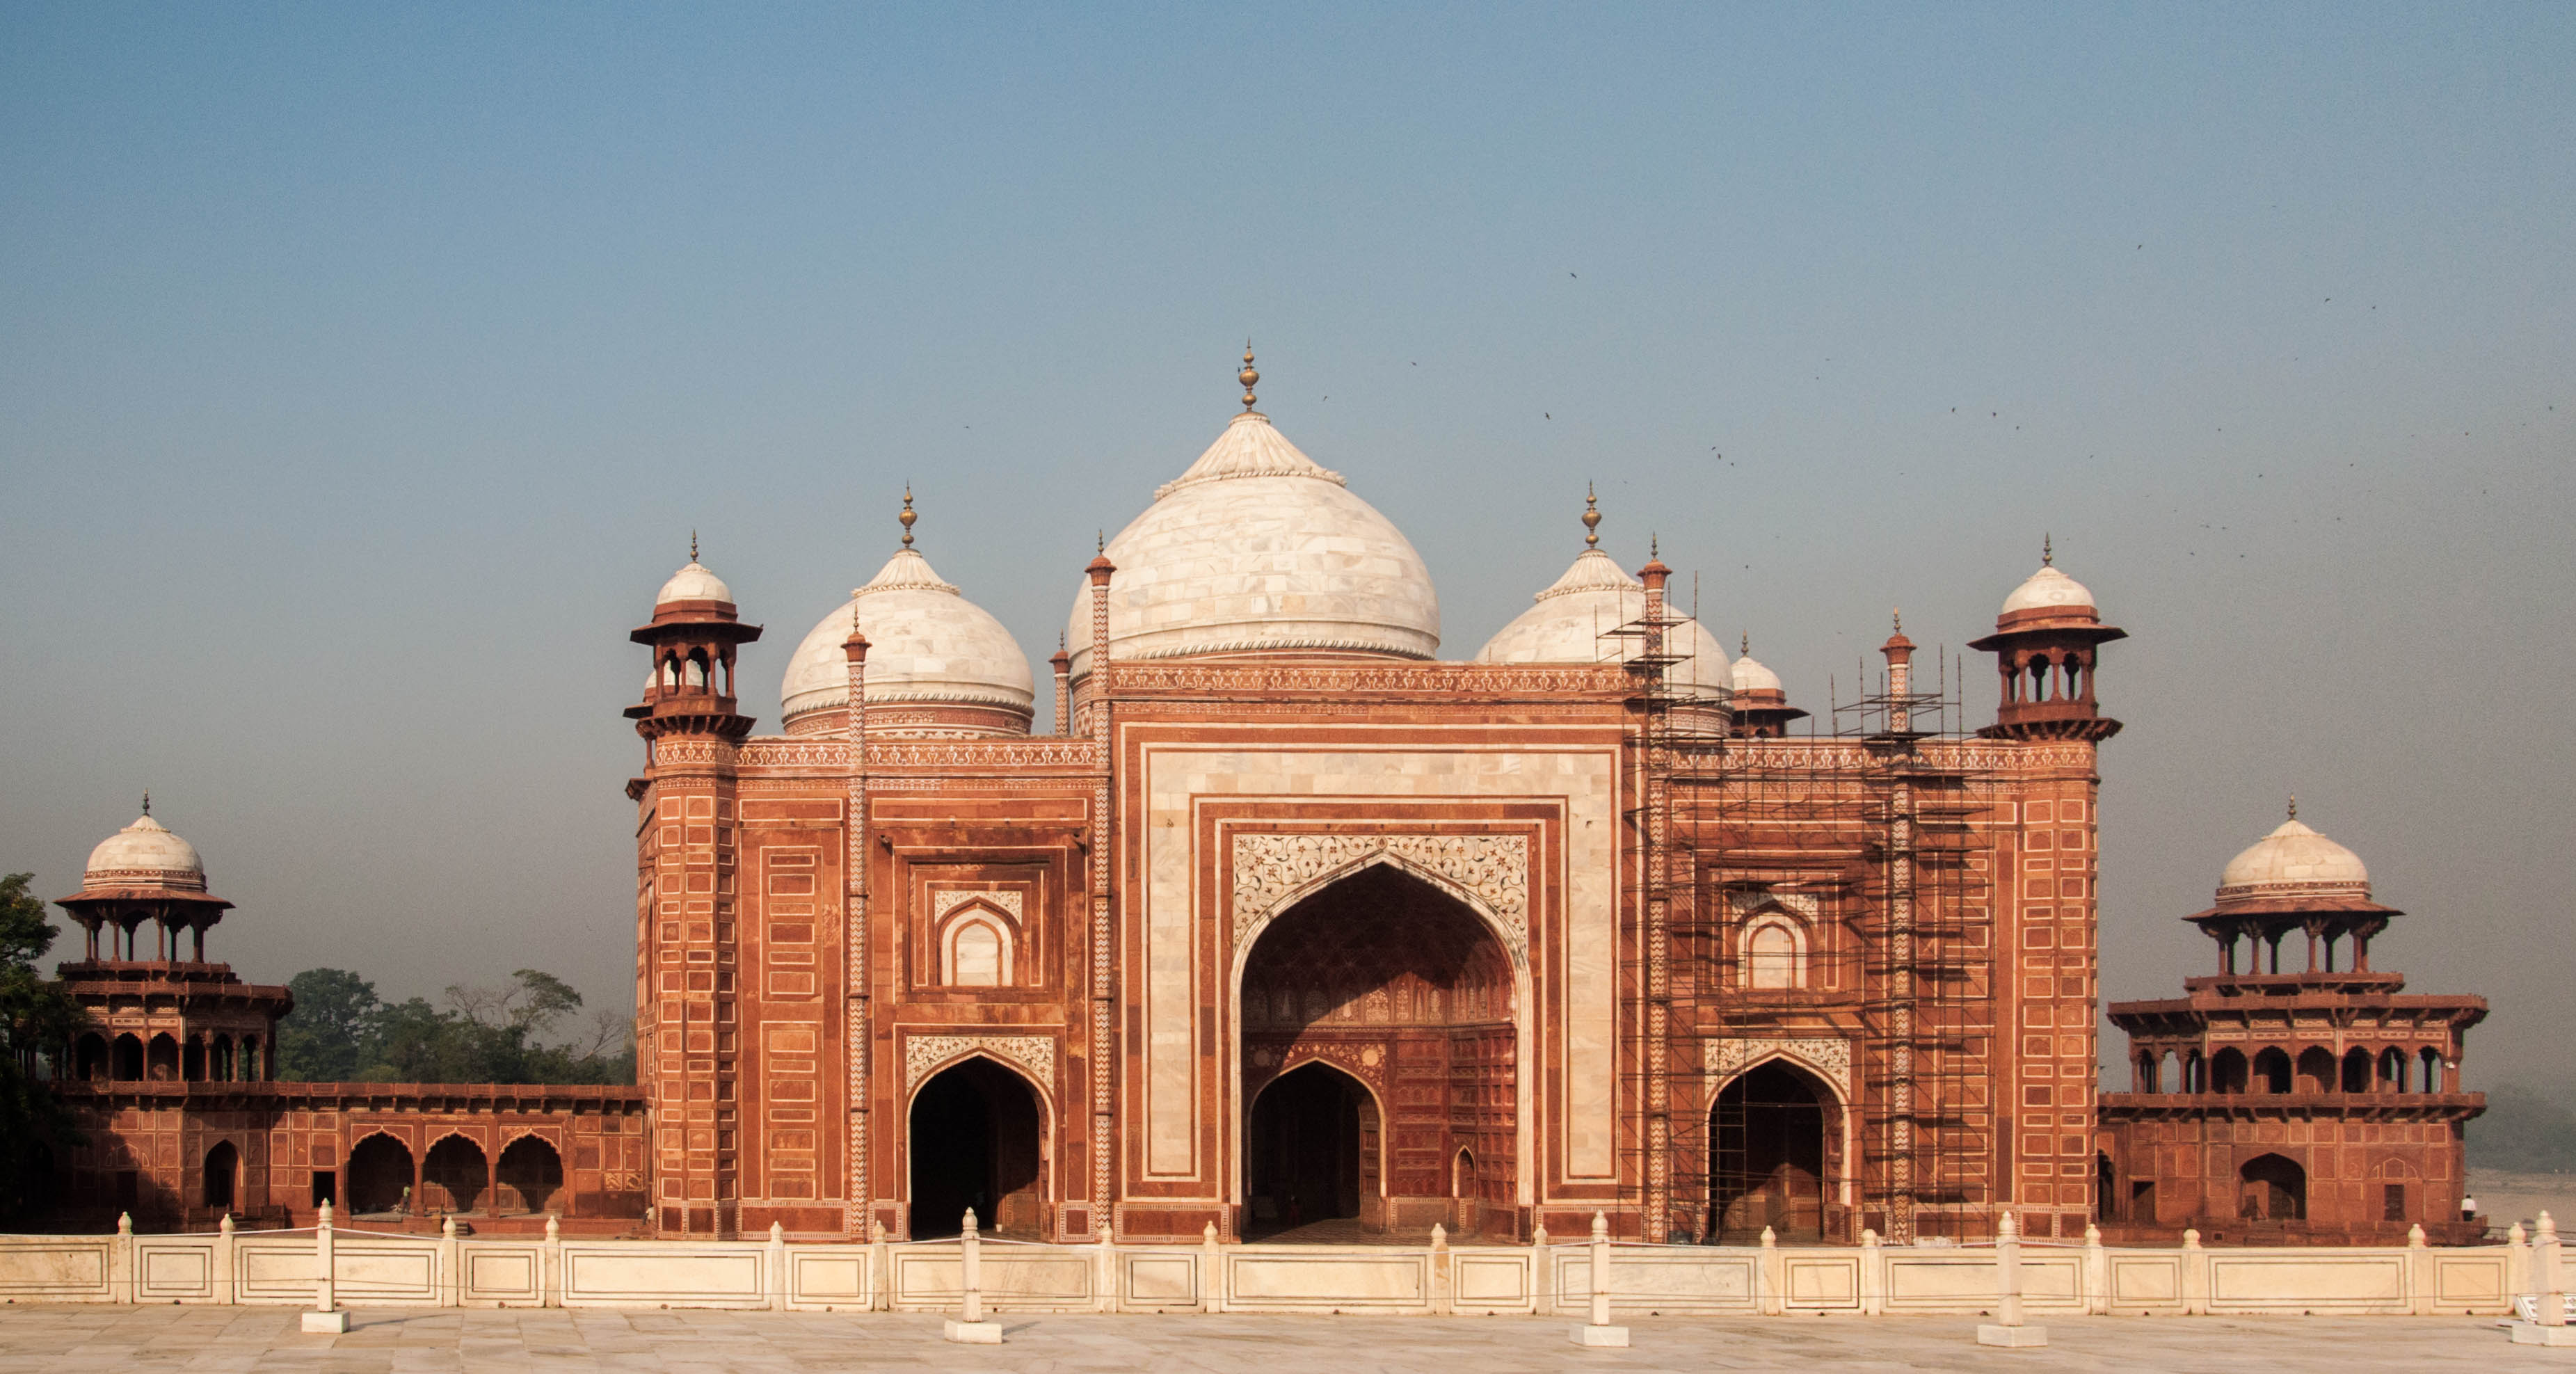 essay on taj mahal in urdu Visit to taj mahal visit to taj mahal : there are many beautiful and worth seeing historical places in india but the taj mahal of agra is the most beautiful of all.